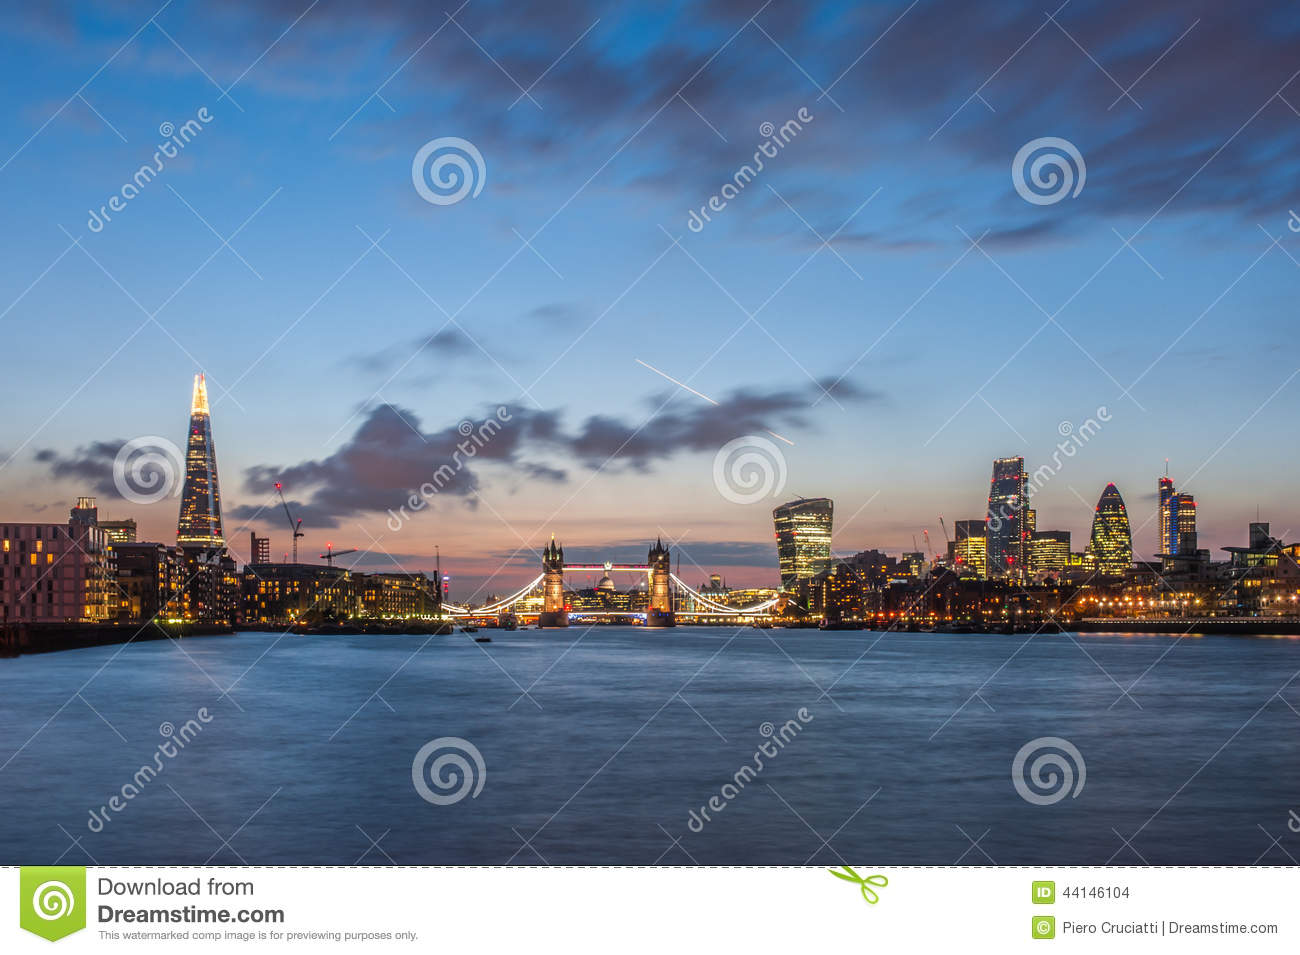 The new London skyline at night with The Shard, Tower Bridge and the skyscrapers of the City